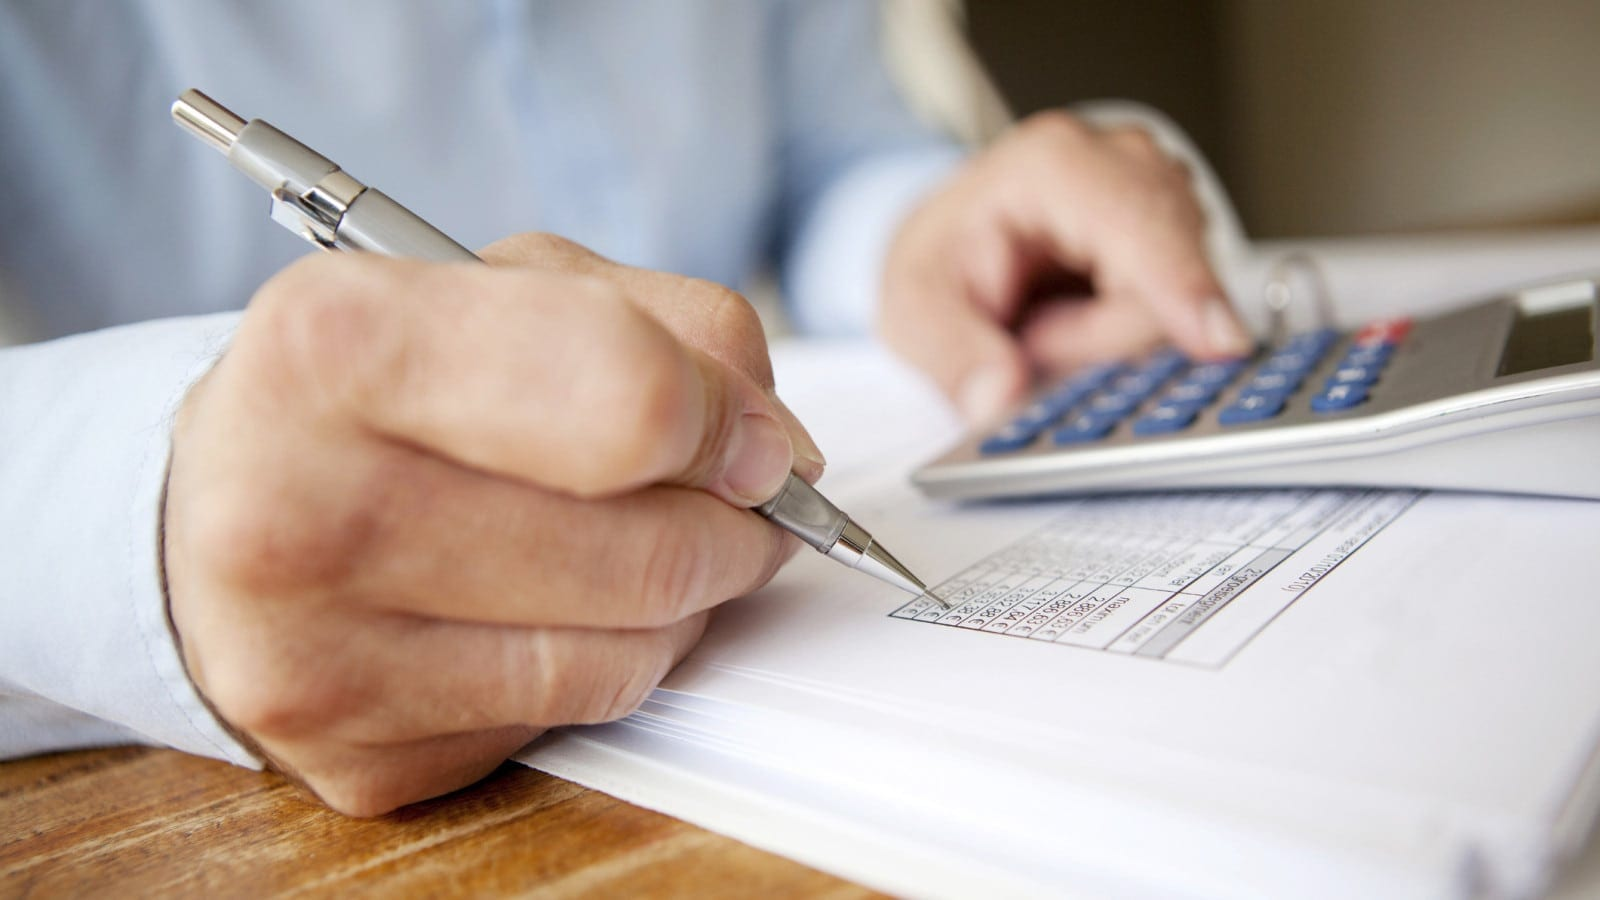 Male Using A Calculator At His Desk Stock Photo